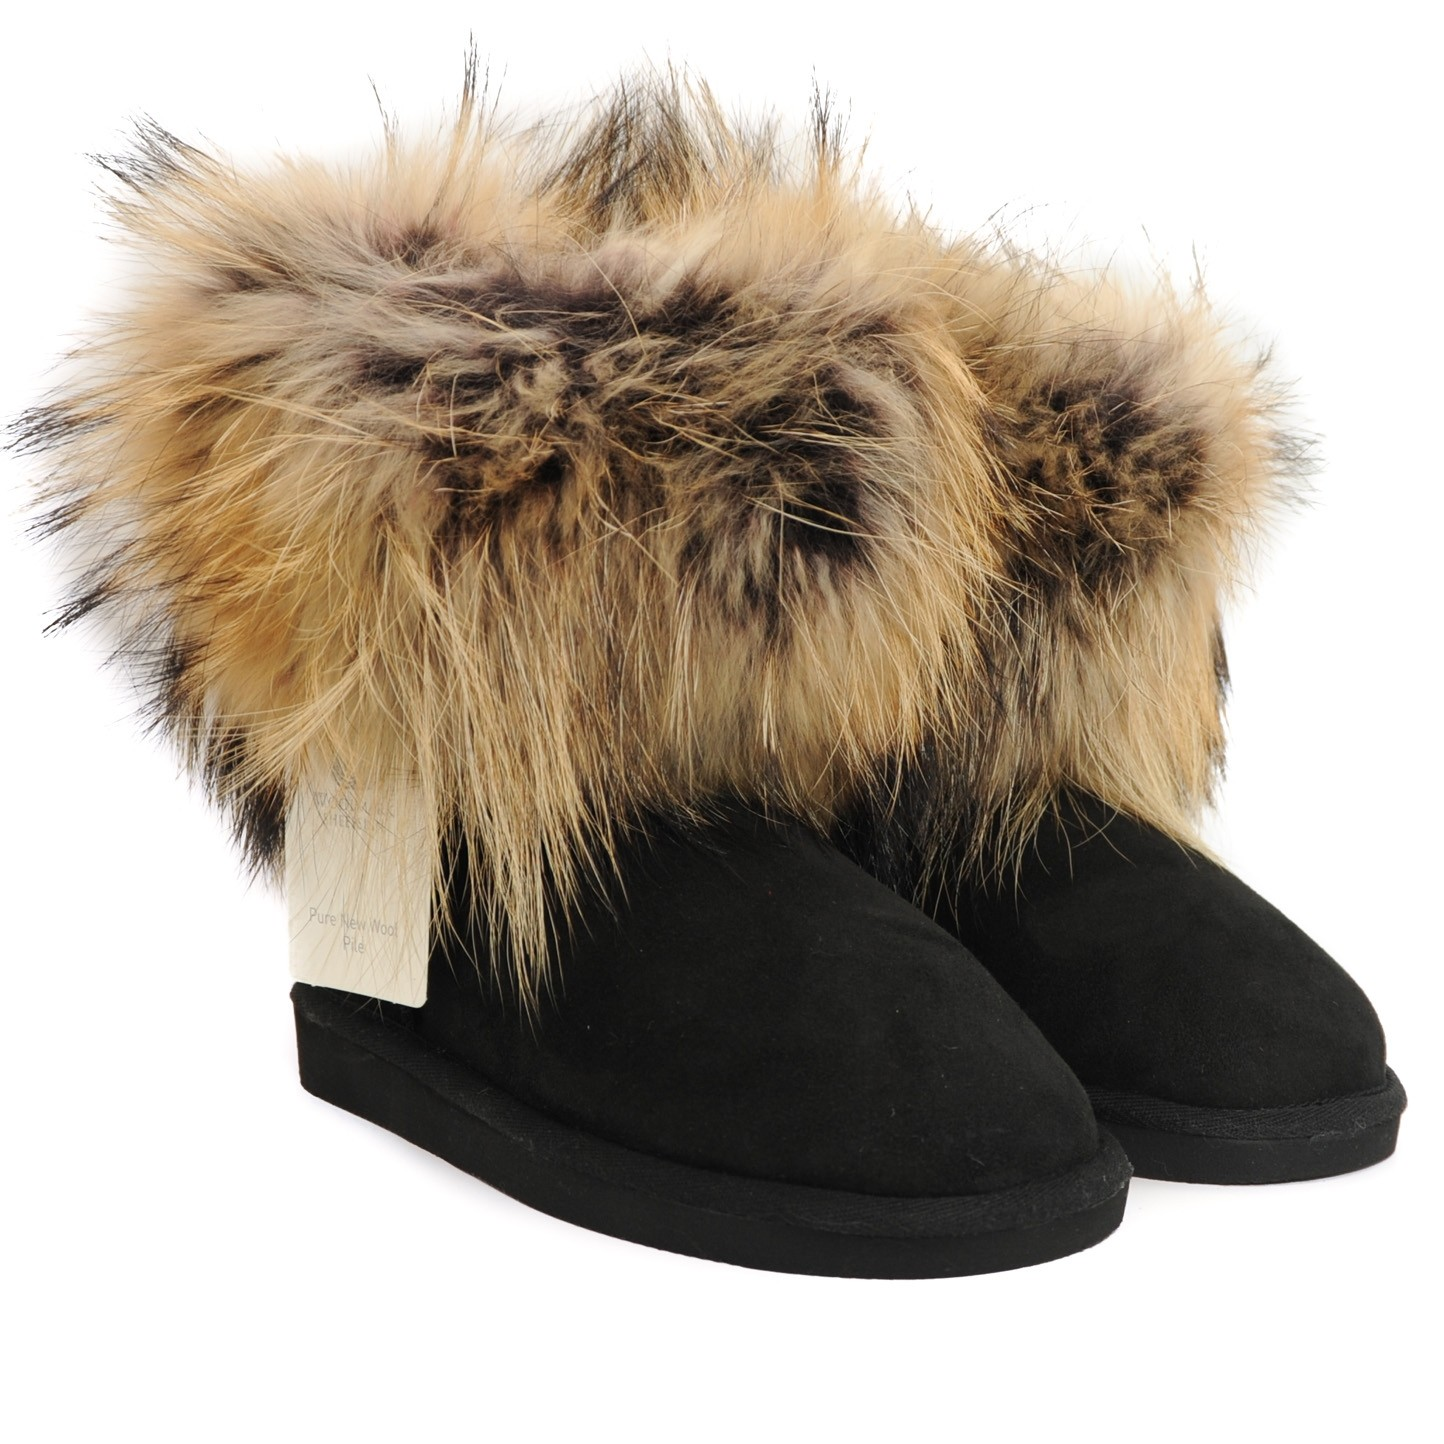 Pegia Suede and Fur Topped Wool Marked Sheepskin Lined Ankle Boots - Black